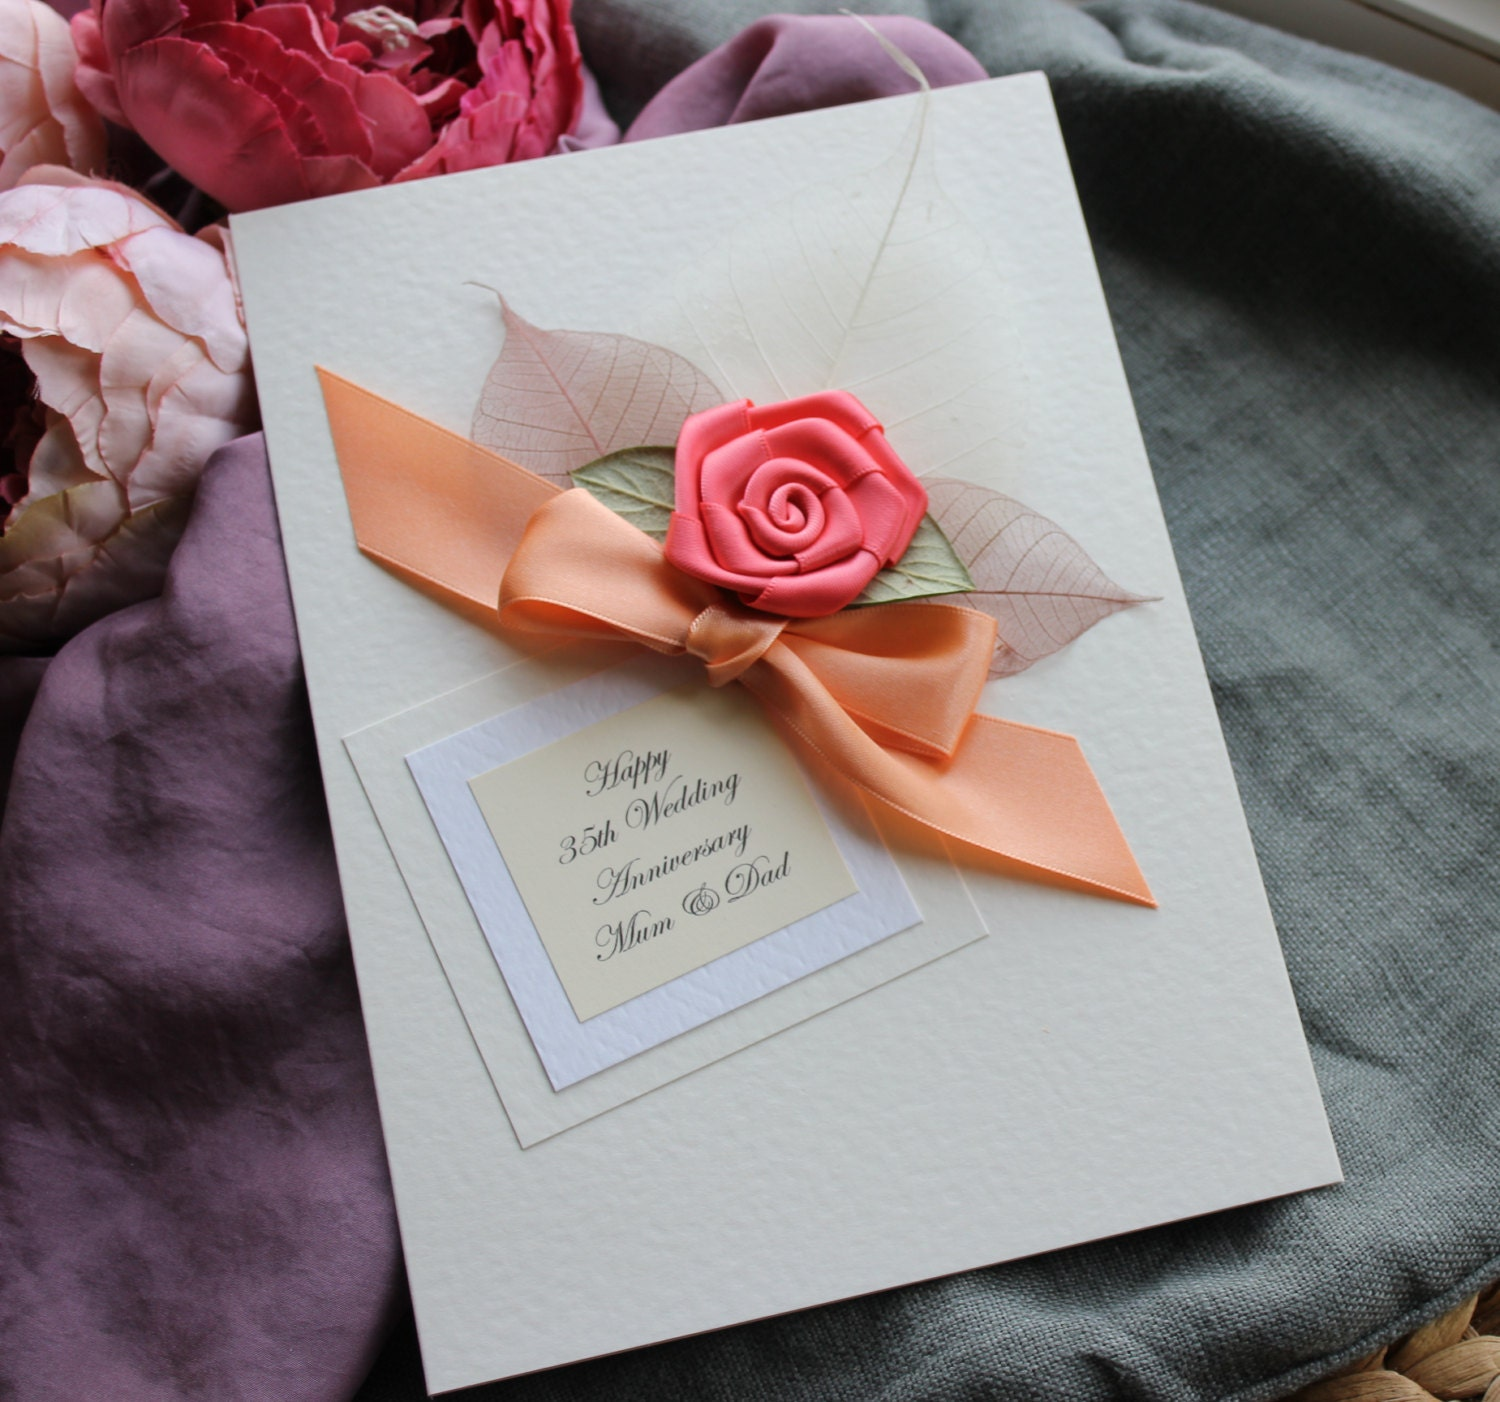 35 Wedding Anniversary Gifts For Parents: Personalised Handmade Card Coral 35th Wedding Anniversary